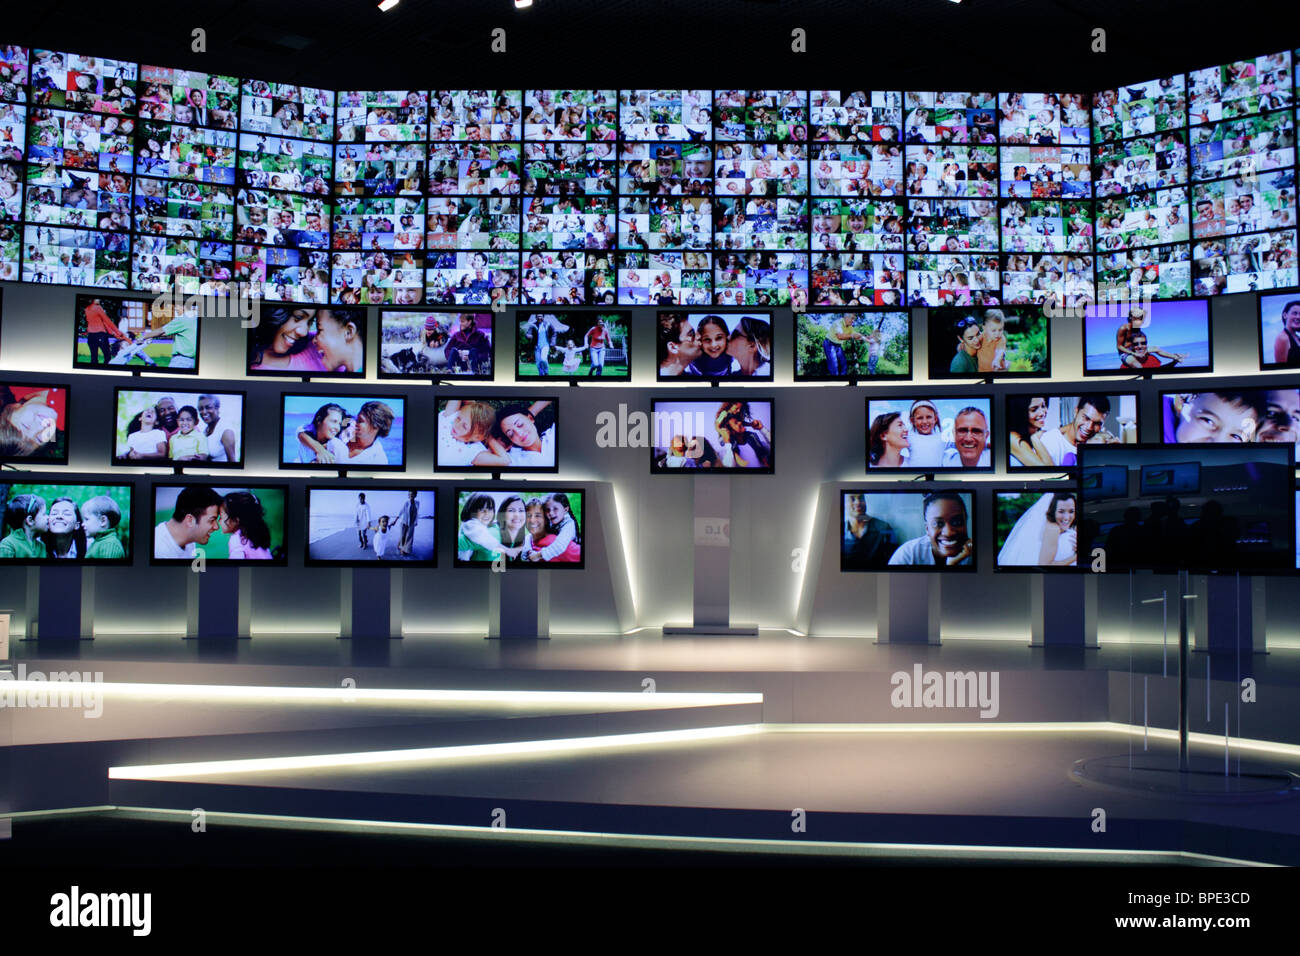 Berlin, IFA, Consumer Electronics Unlimited, many flat screens, LED TV, SL9000 Borderless, in an artistic installation - Stock Image